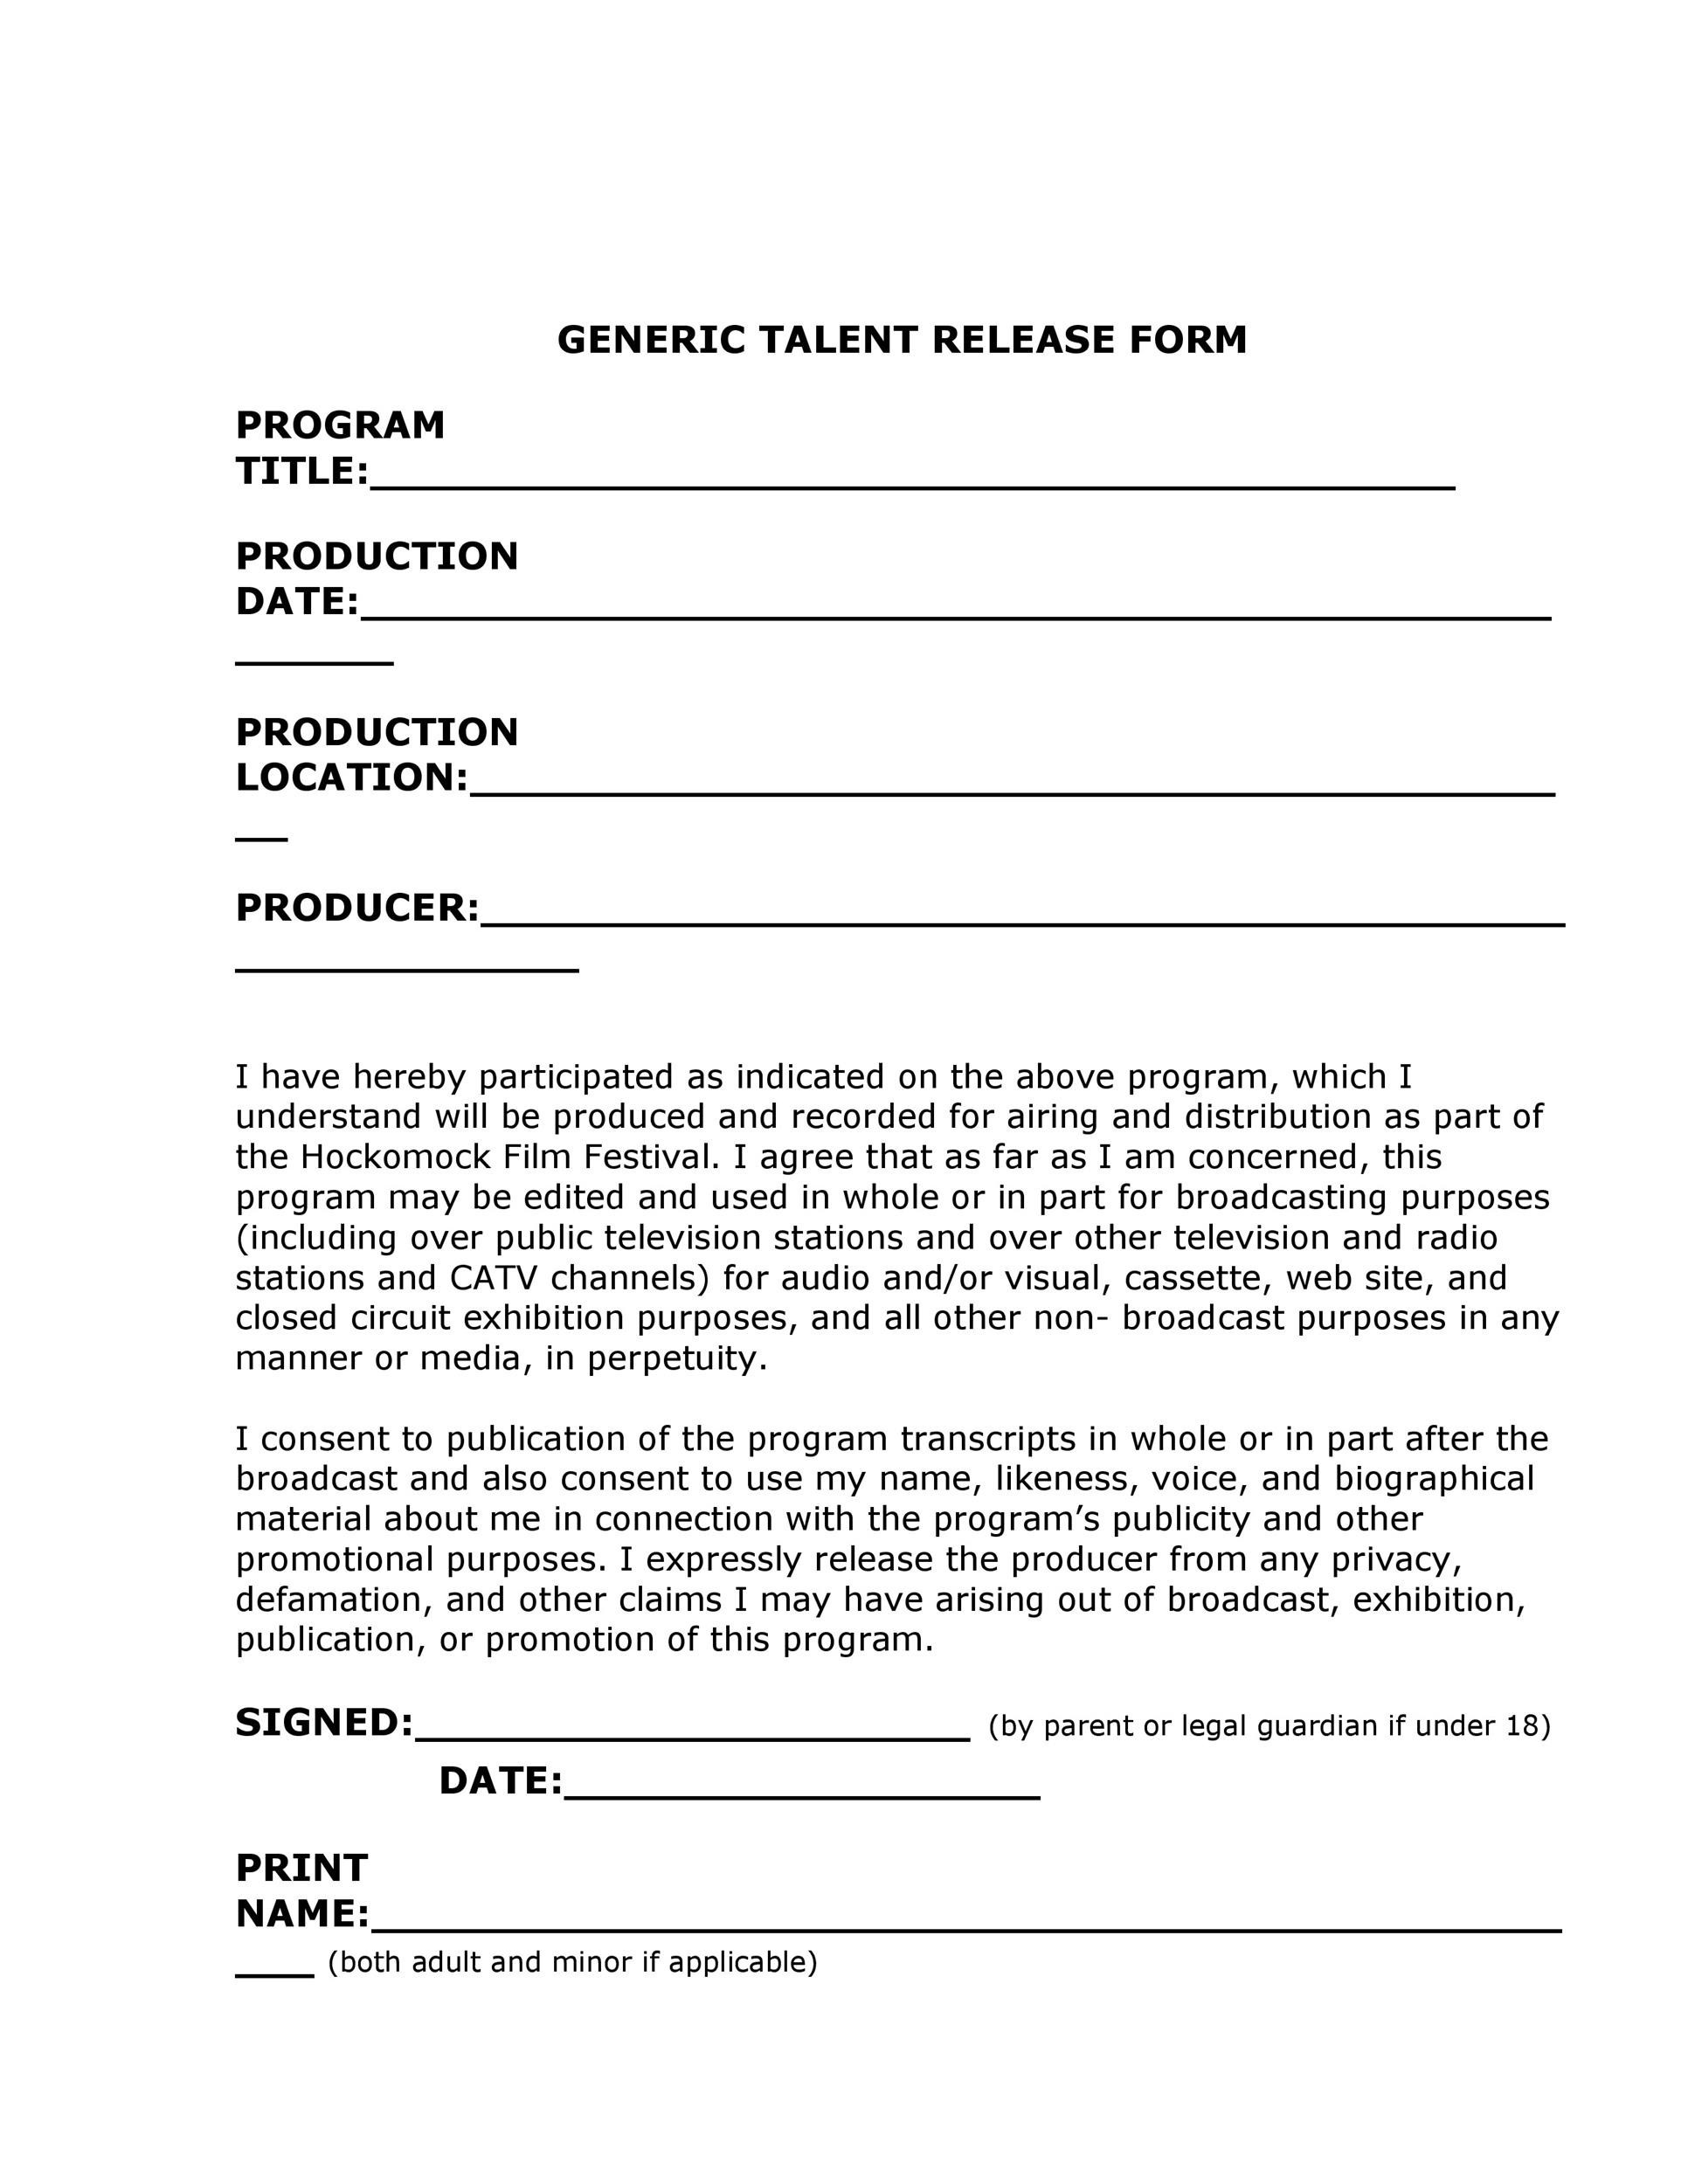 Phd Letter Of Intent Example Resignation Letter Format Hcl 762663810979 Letter Poem Excel Stencil Letters Wood